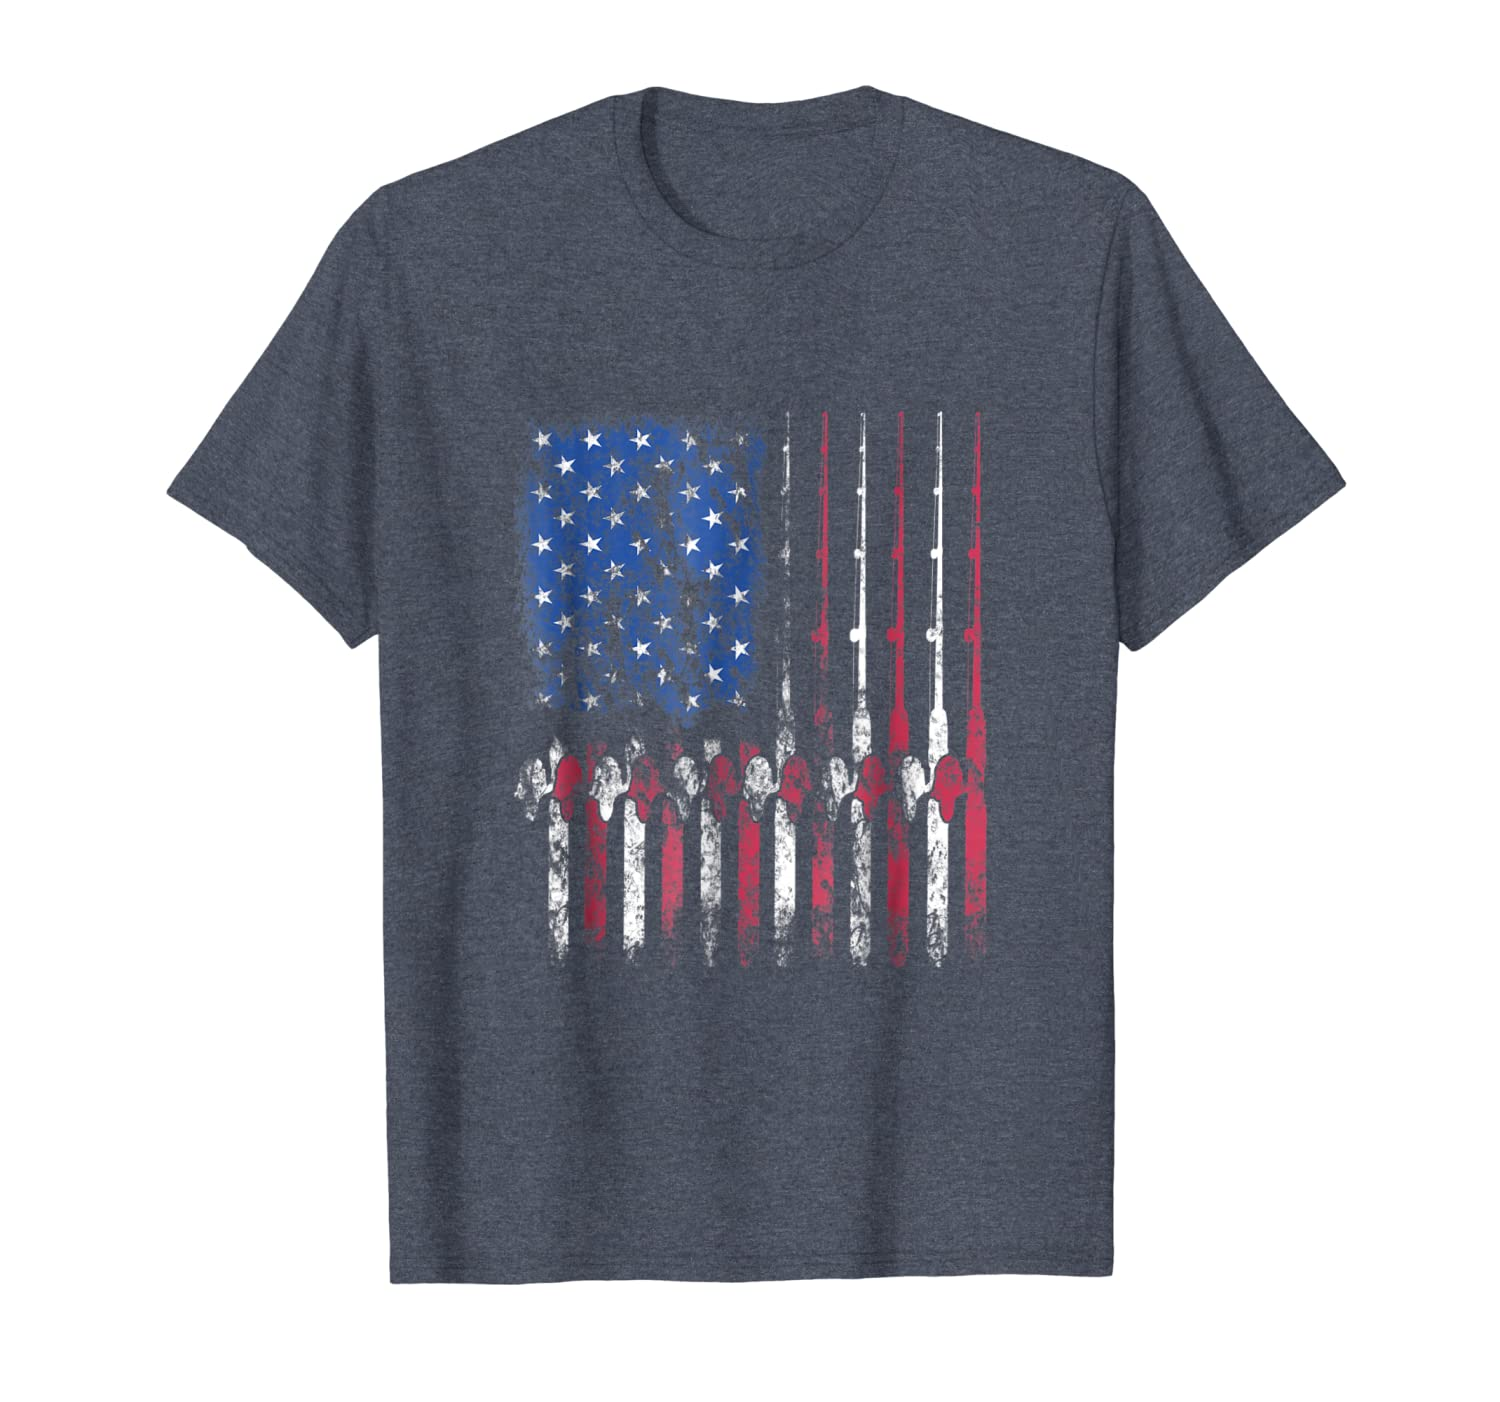 Fishing America T-Shirt American Flag Fisherman Fish Gift LongSleeve Tee